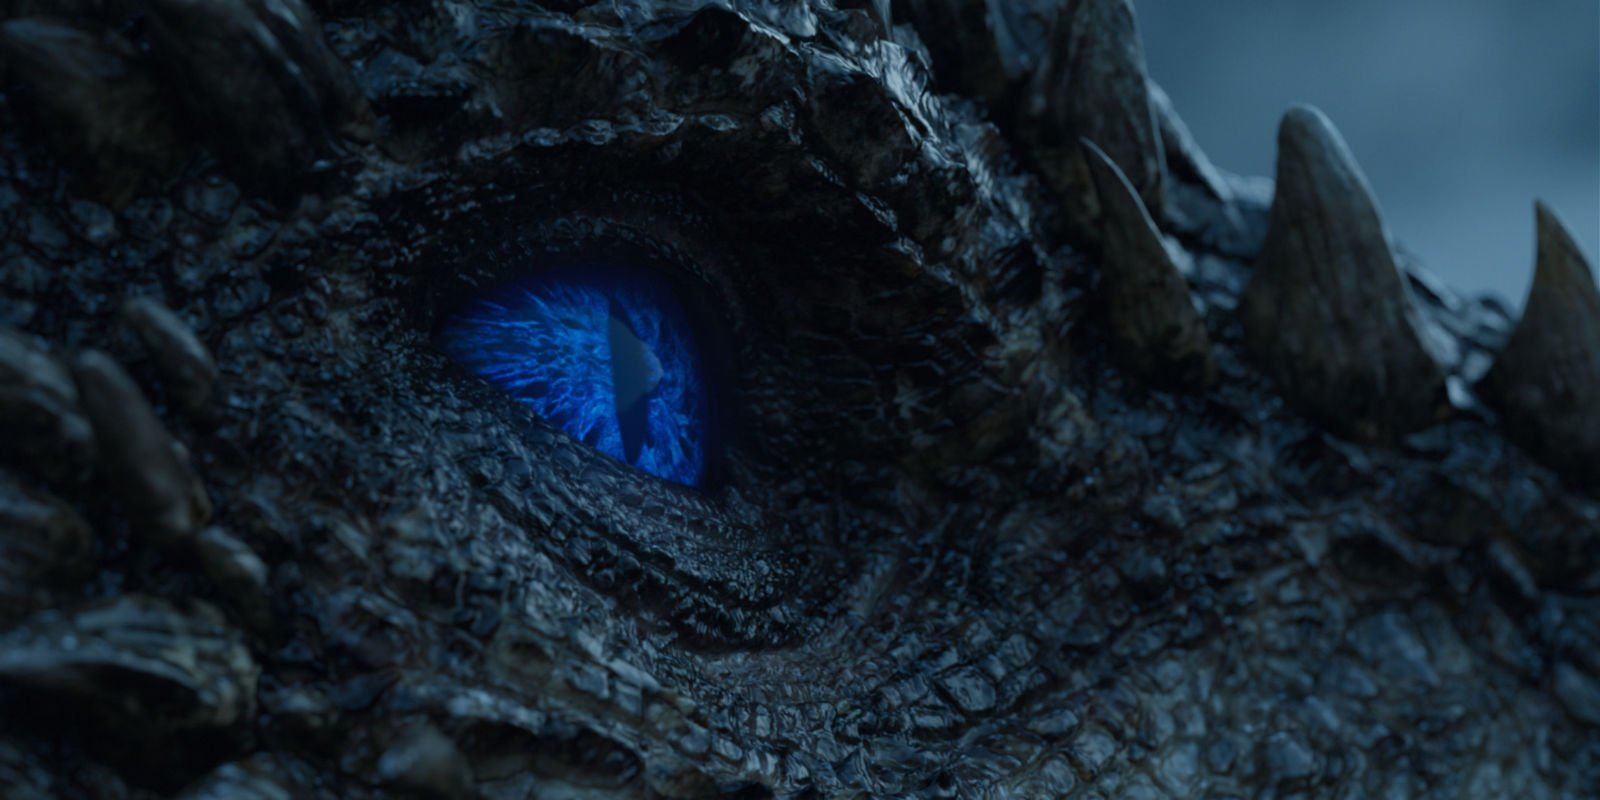 Game of Thrones' ice dragon's scream is actually drunk fans yelling